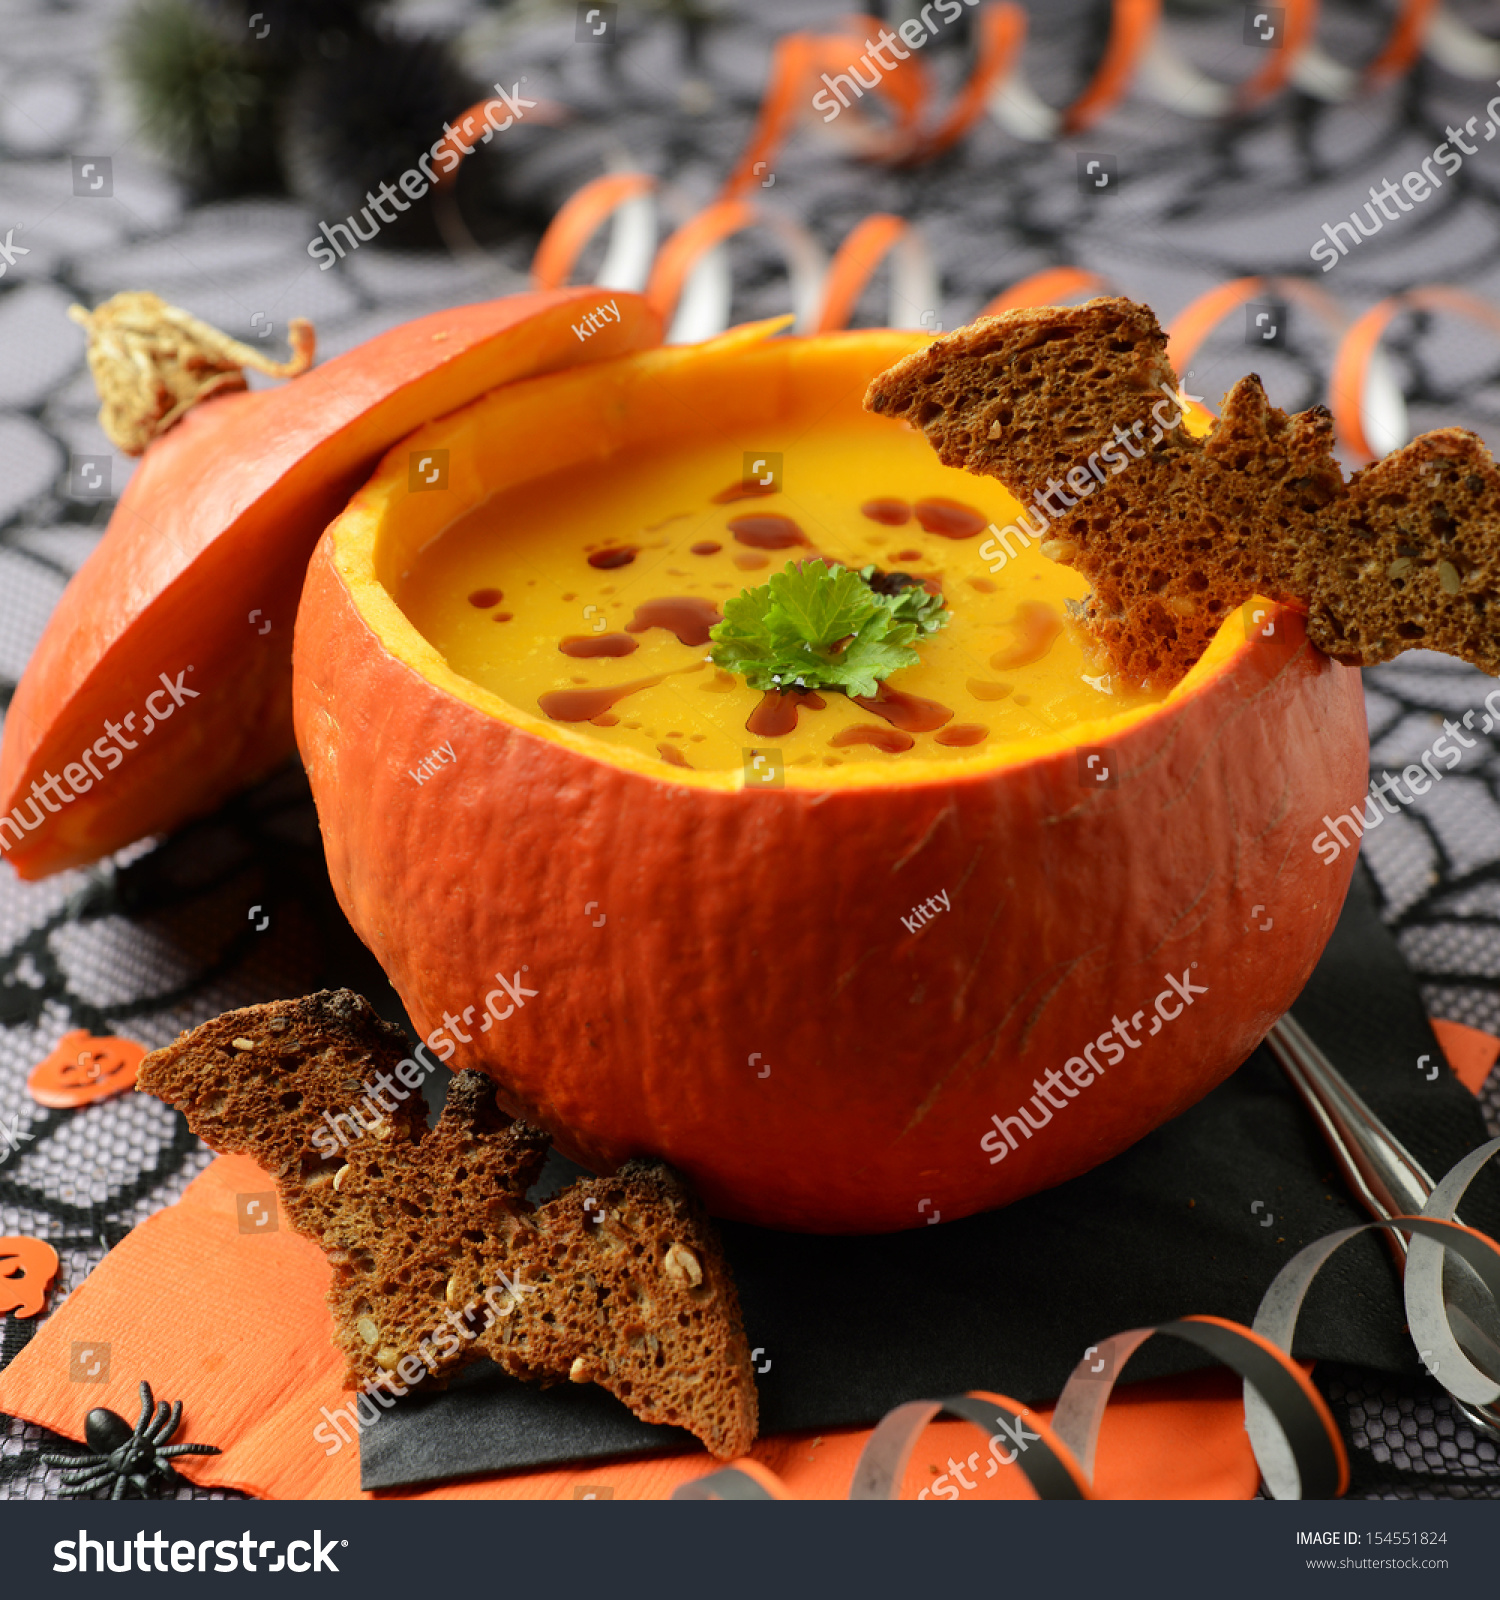 how to cook fresh pumpkin for soup